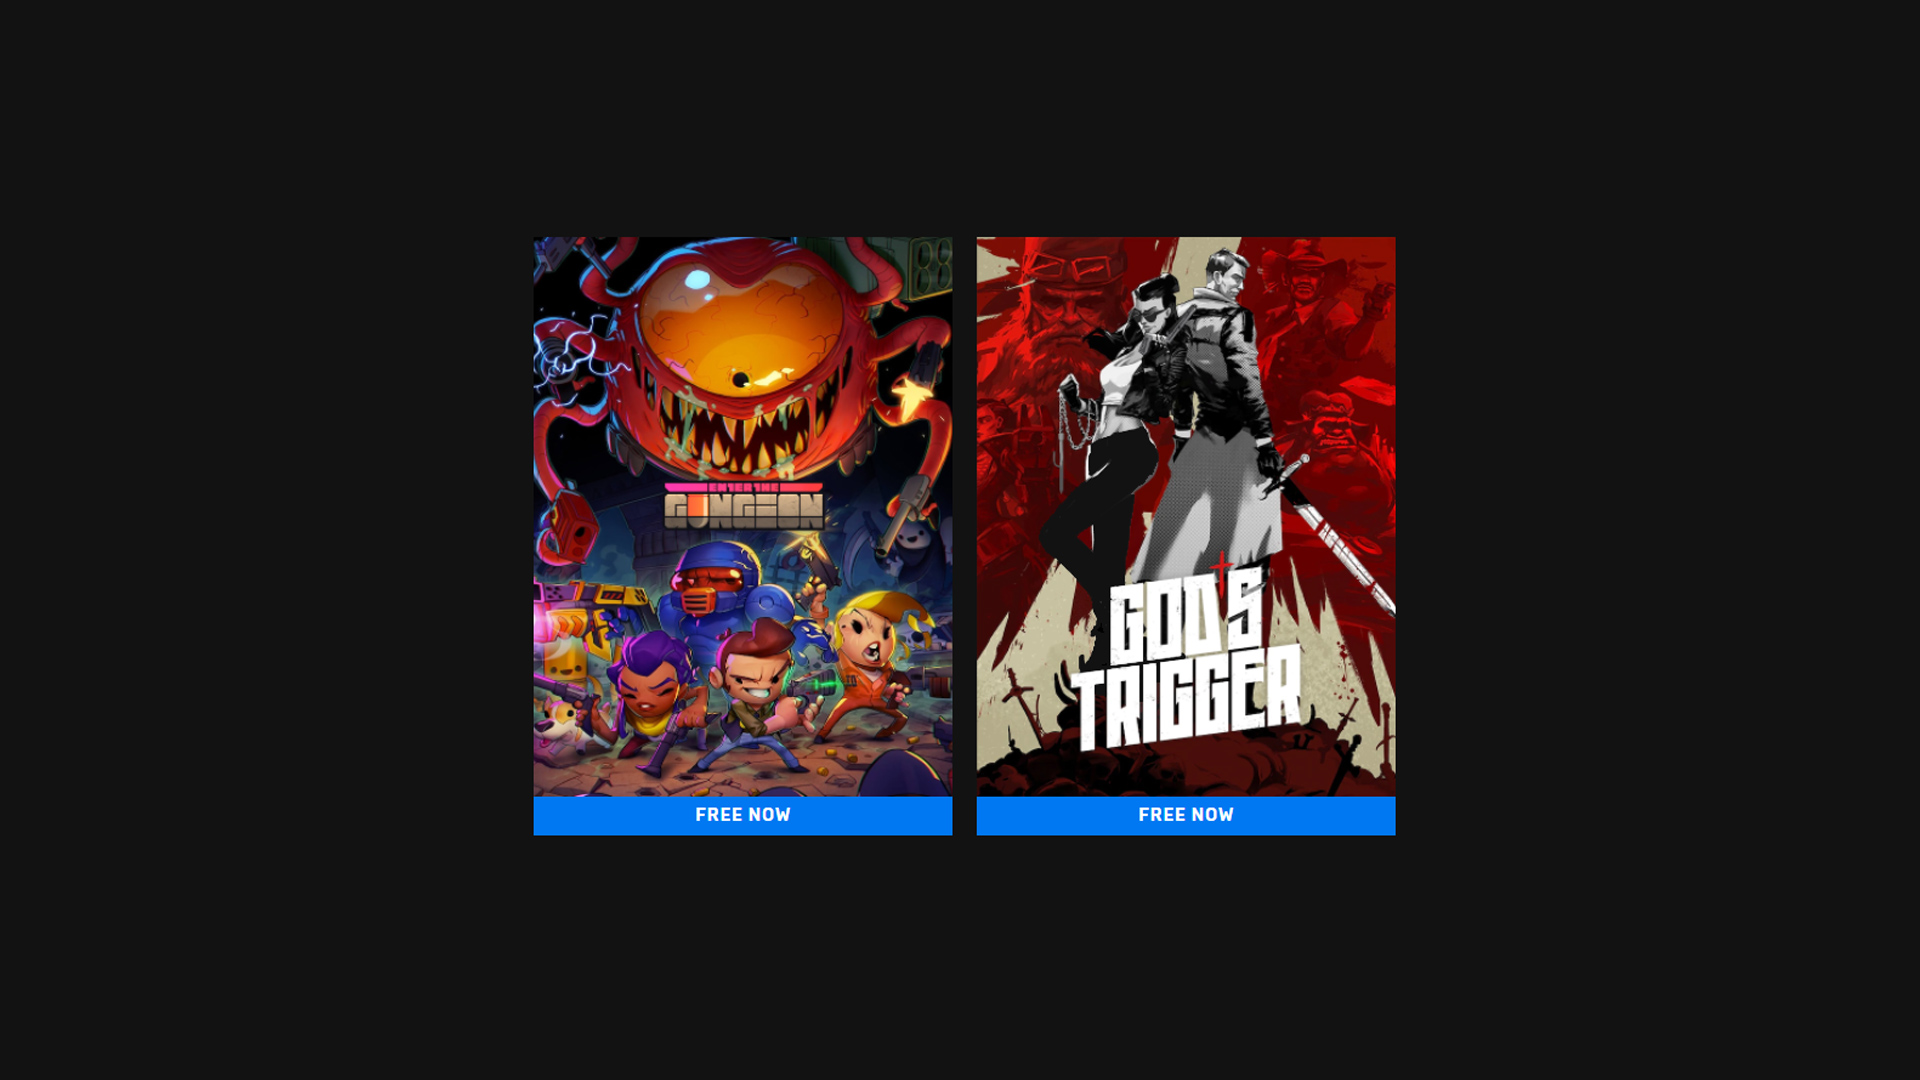 This week's Epic Games Store free games are Enter the Gungeon & God's Trigger